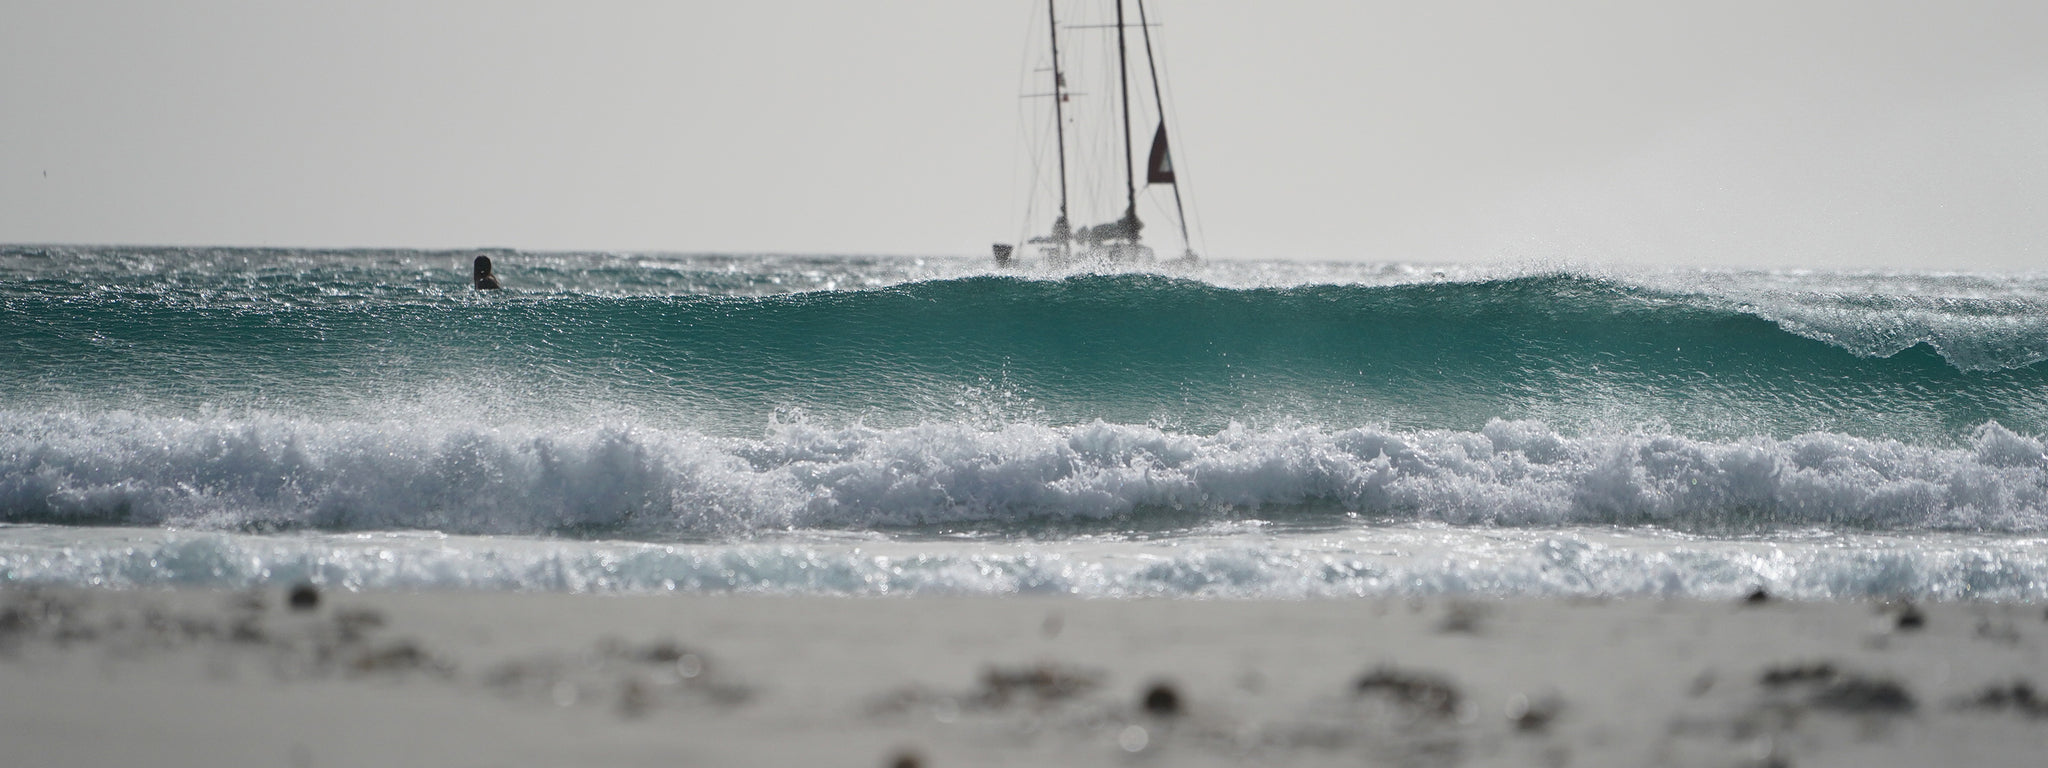 Mele Saili Surfing The Mediterranean With Onde Nostre And